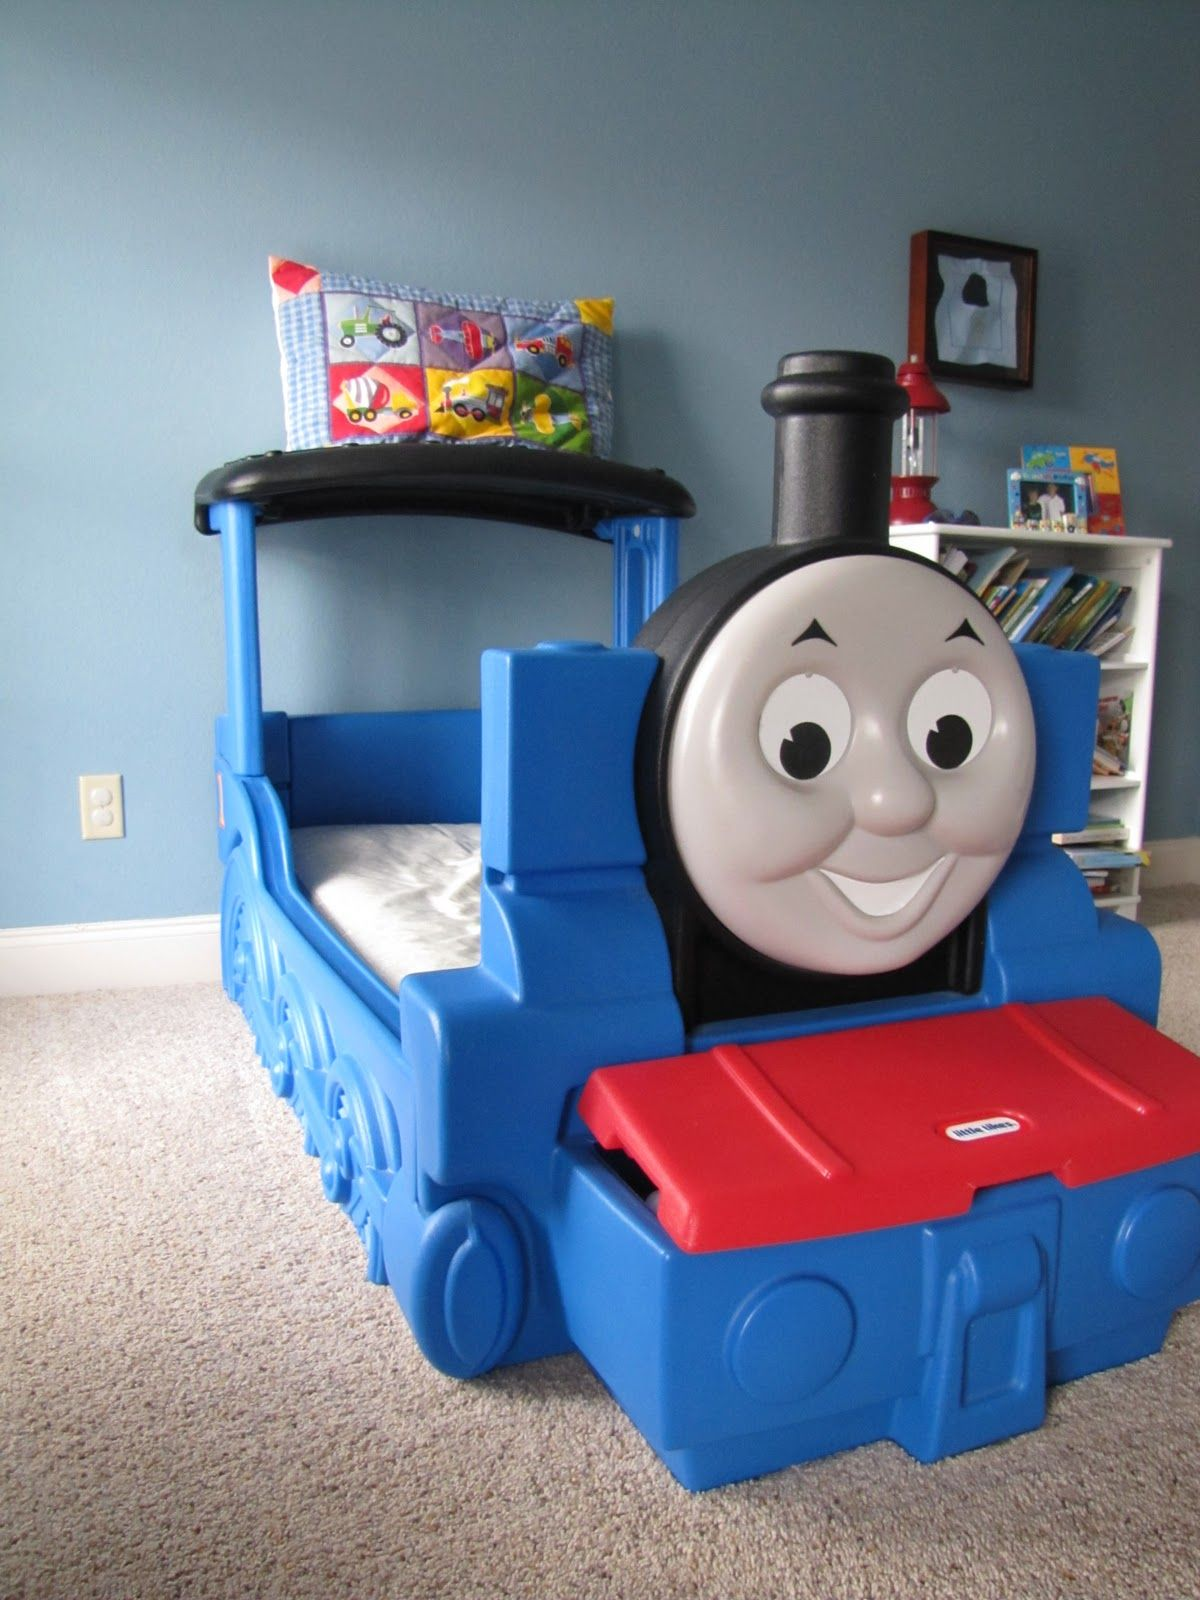 Cool Thomas The Tank Engine Bed Toddler Bed Bed Toddler Bed Sheets